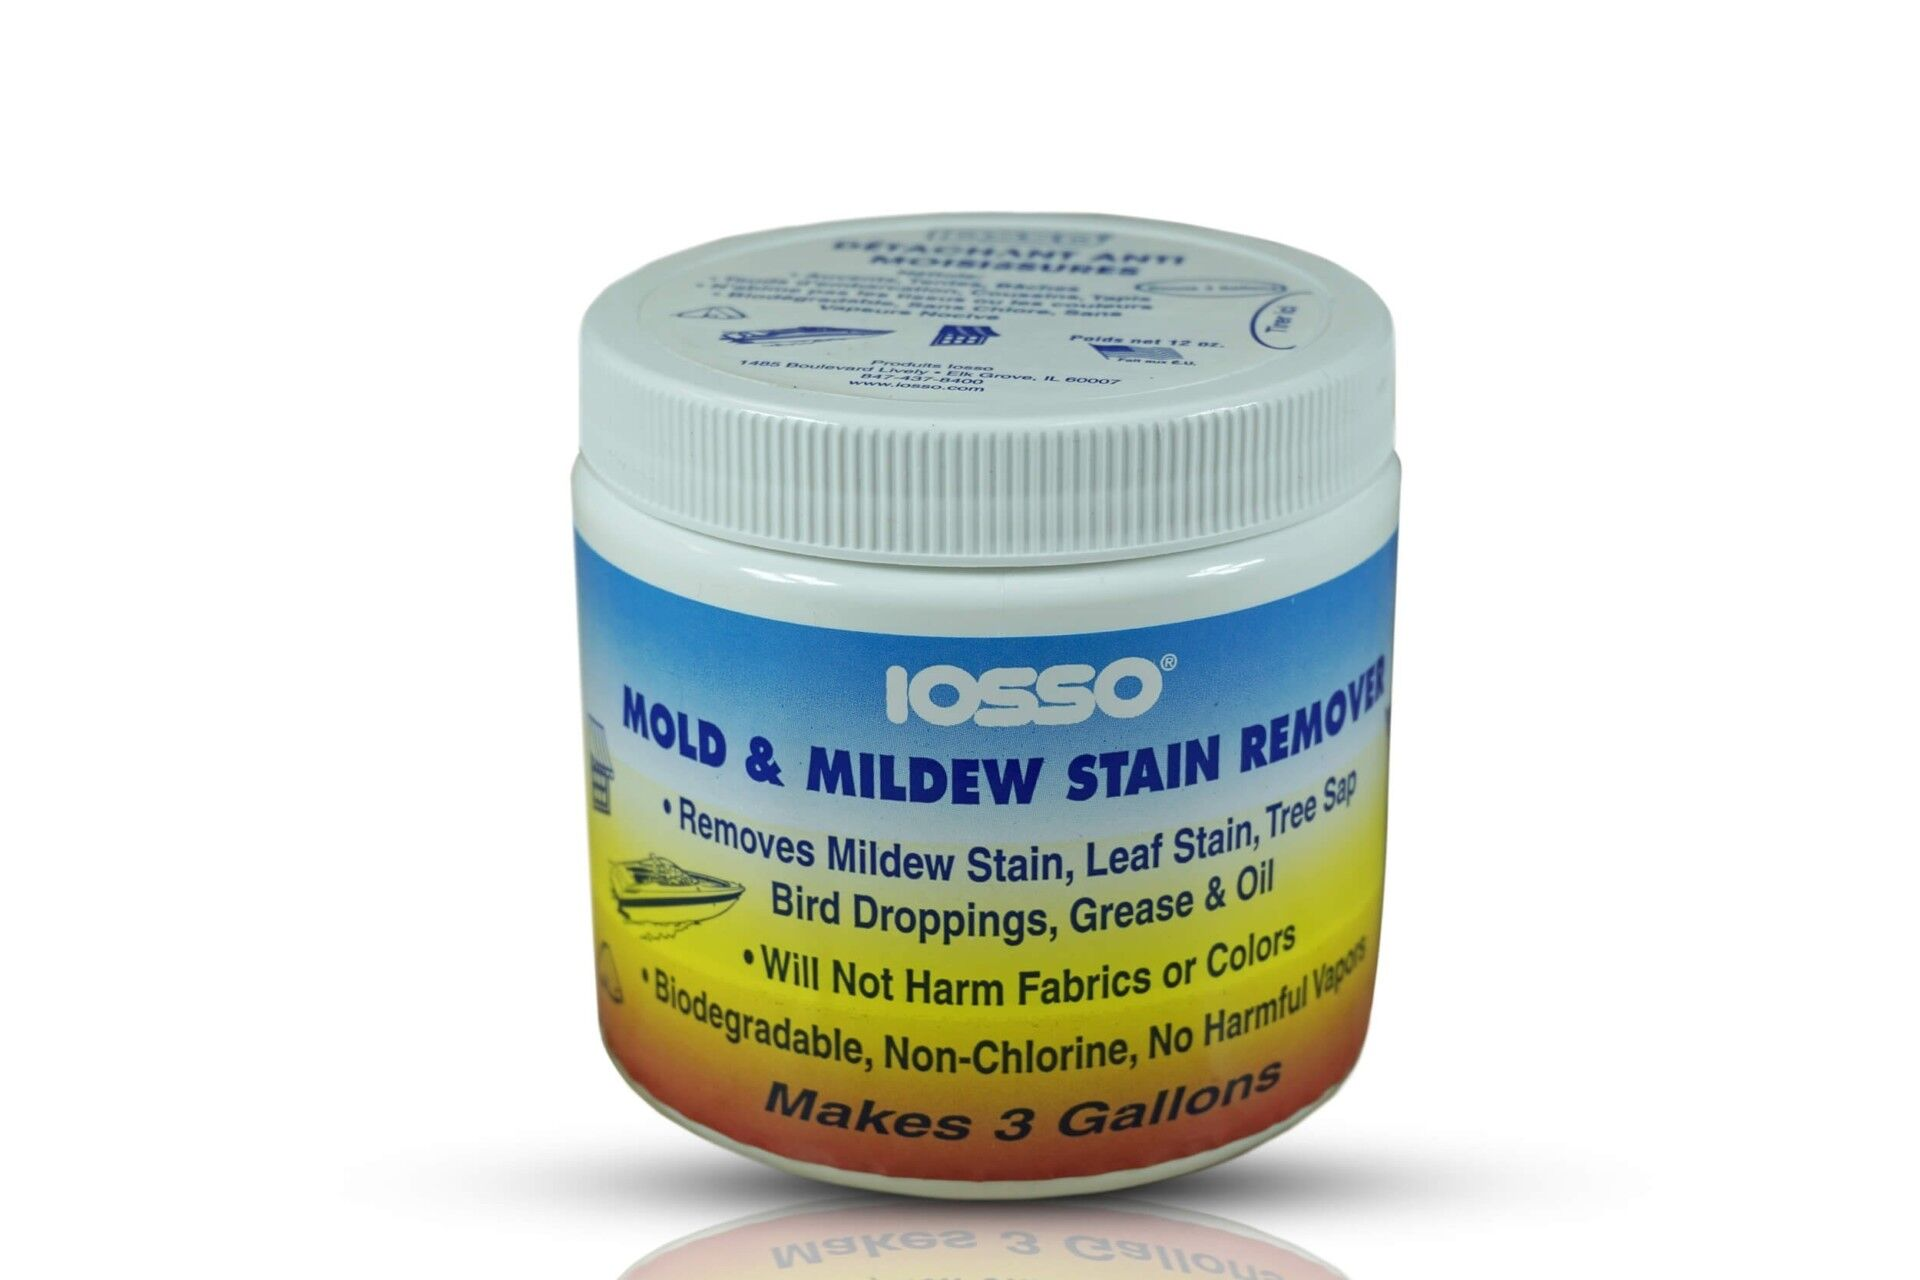 iosso mold mildew stain remover